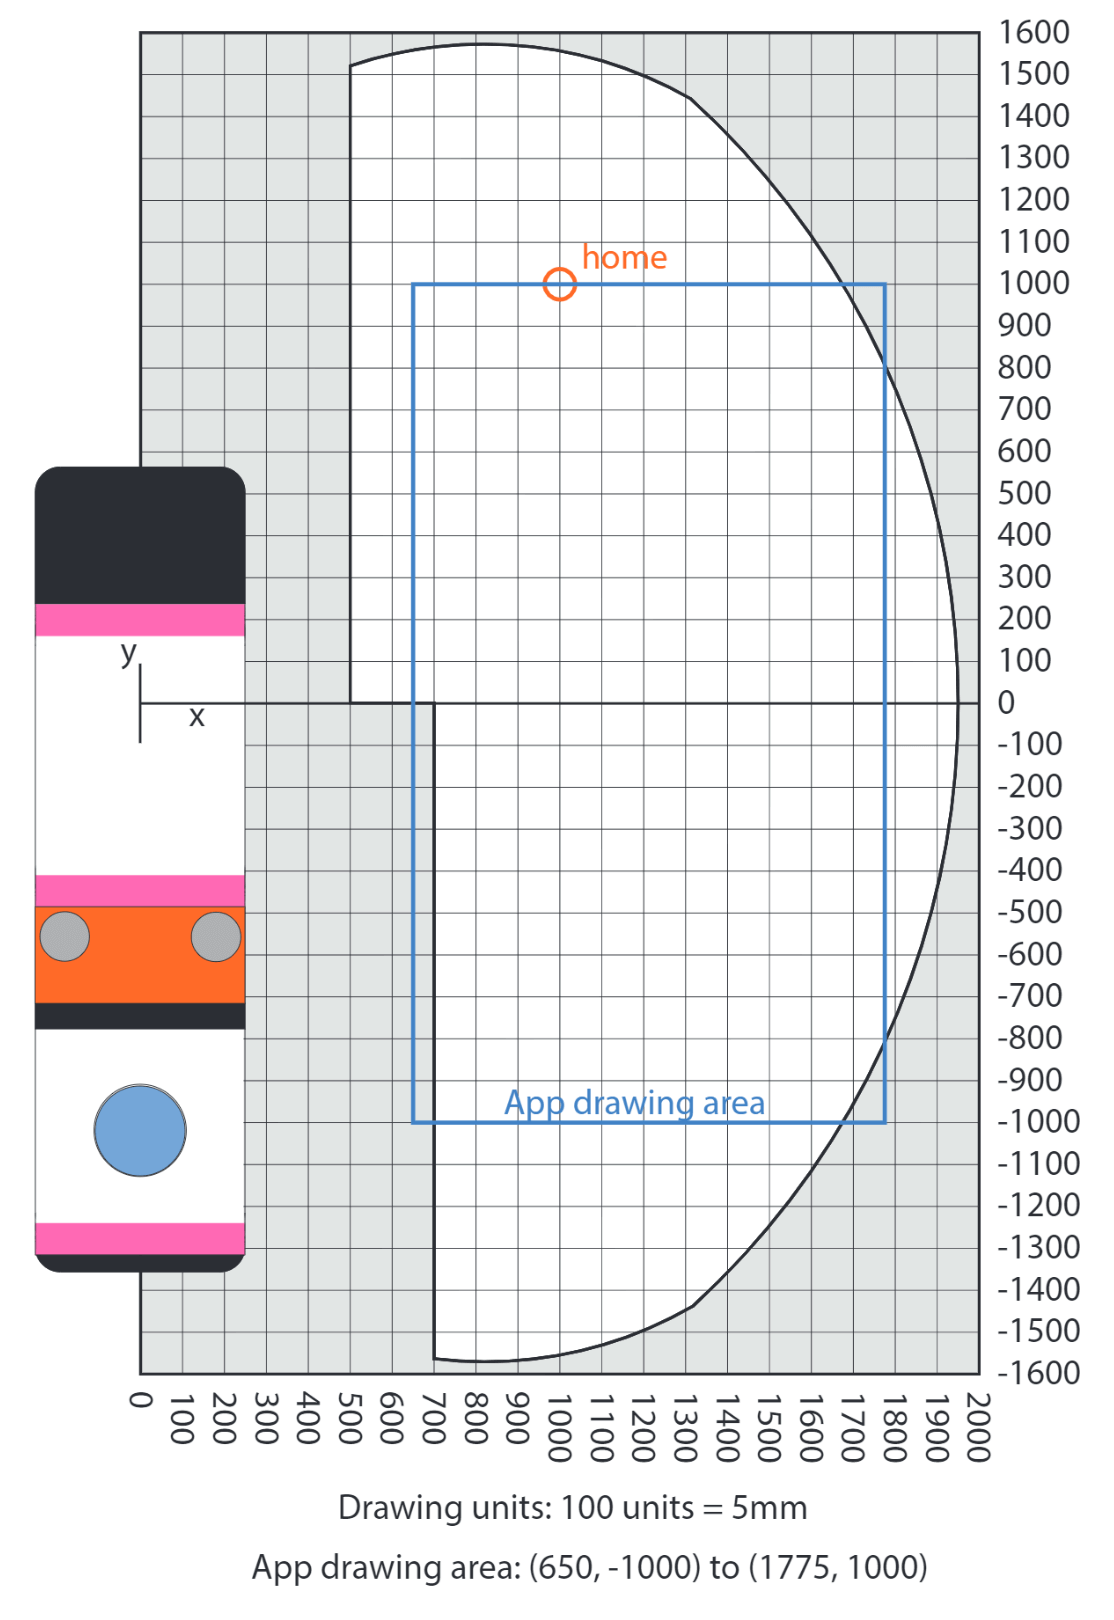 image showing line-us coordinate system and drawable area